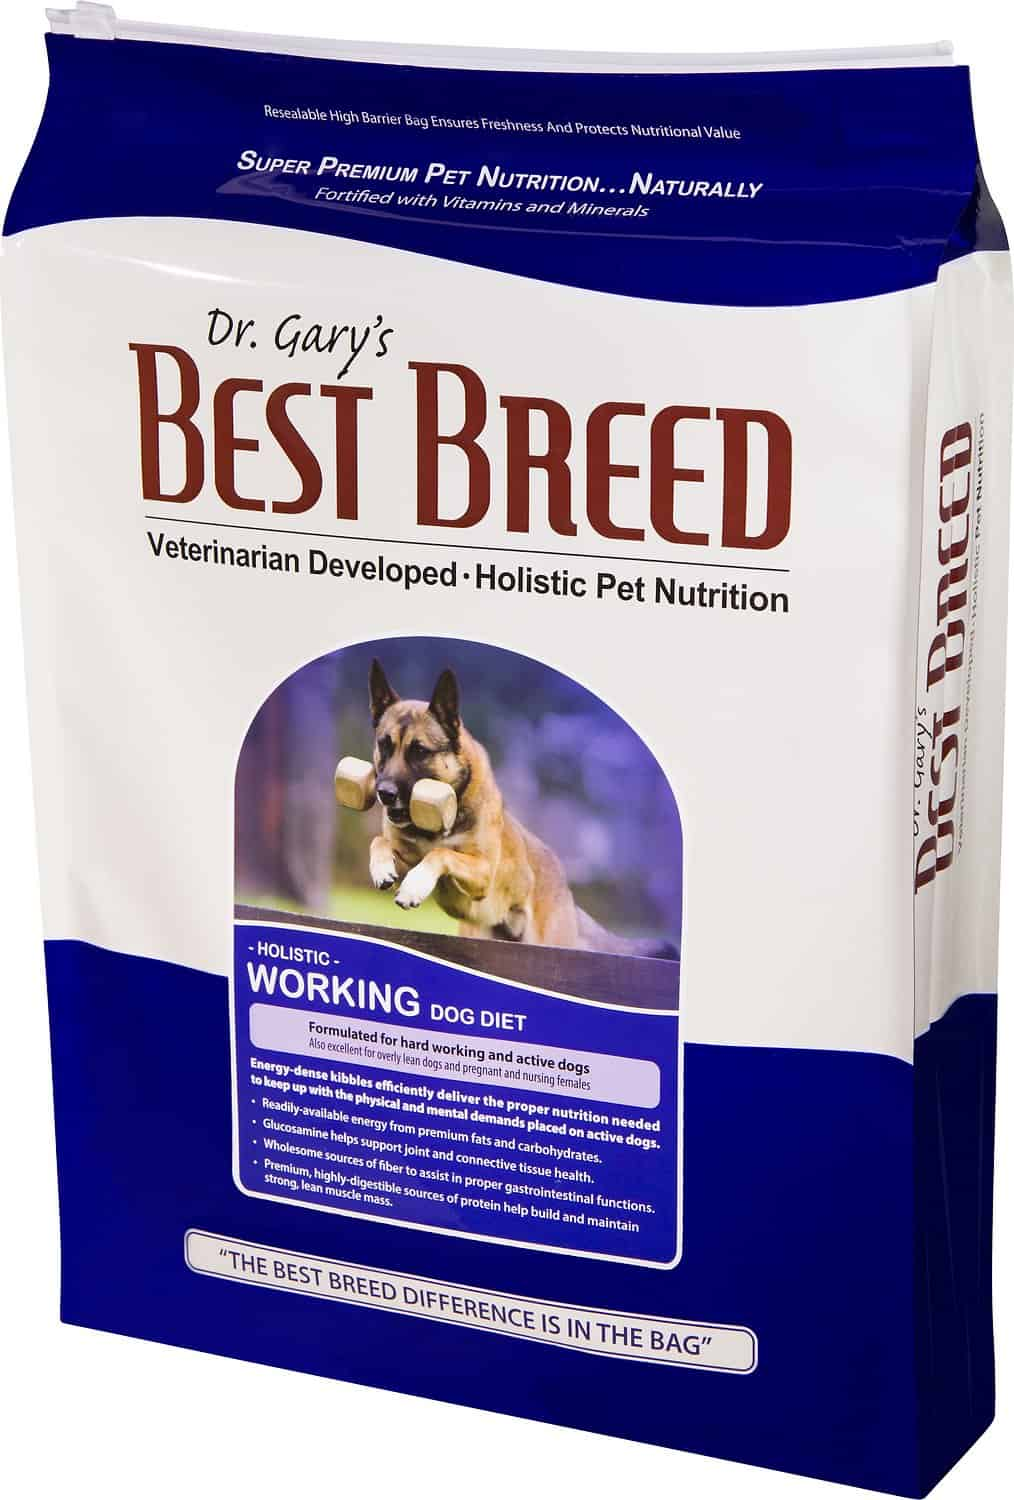 Dr. Gary's Best Breed Dog Food Review 2020: Best Holistic Pet Food? 13